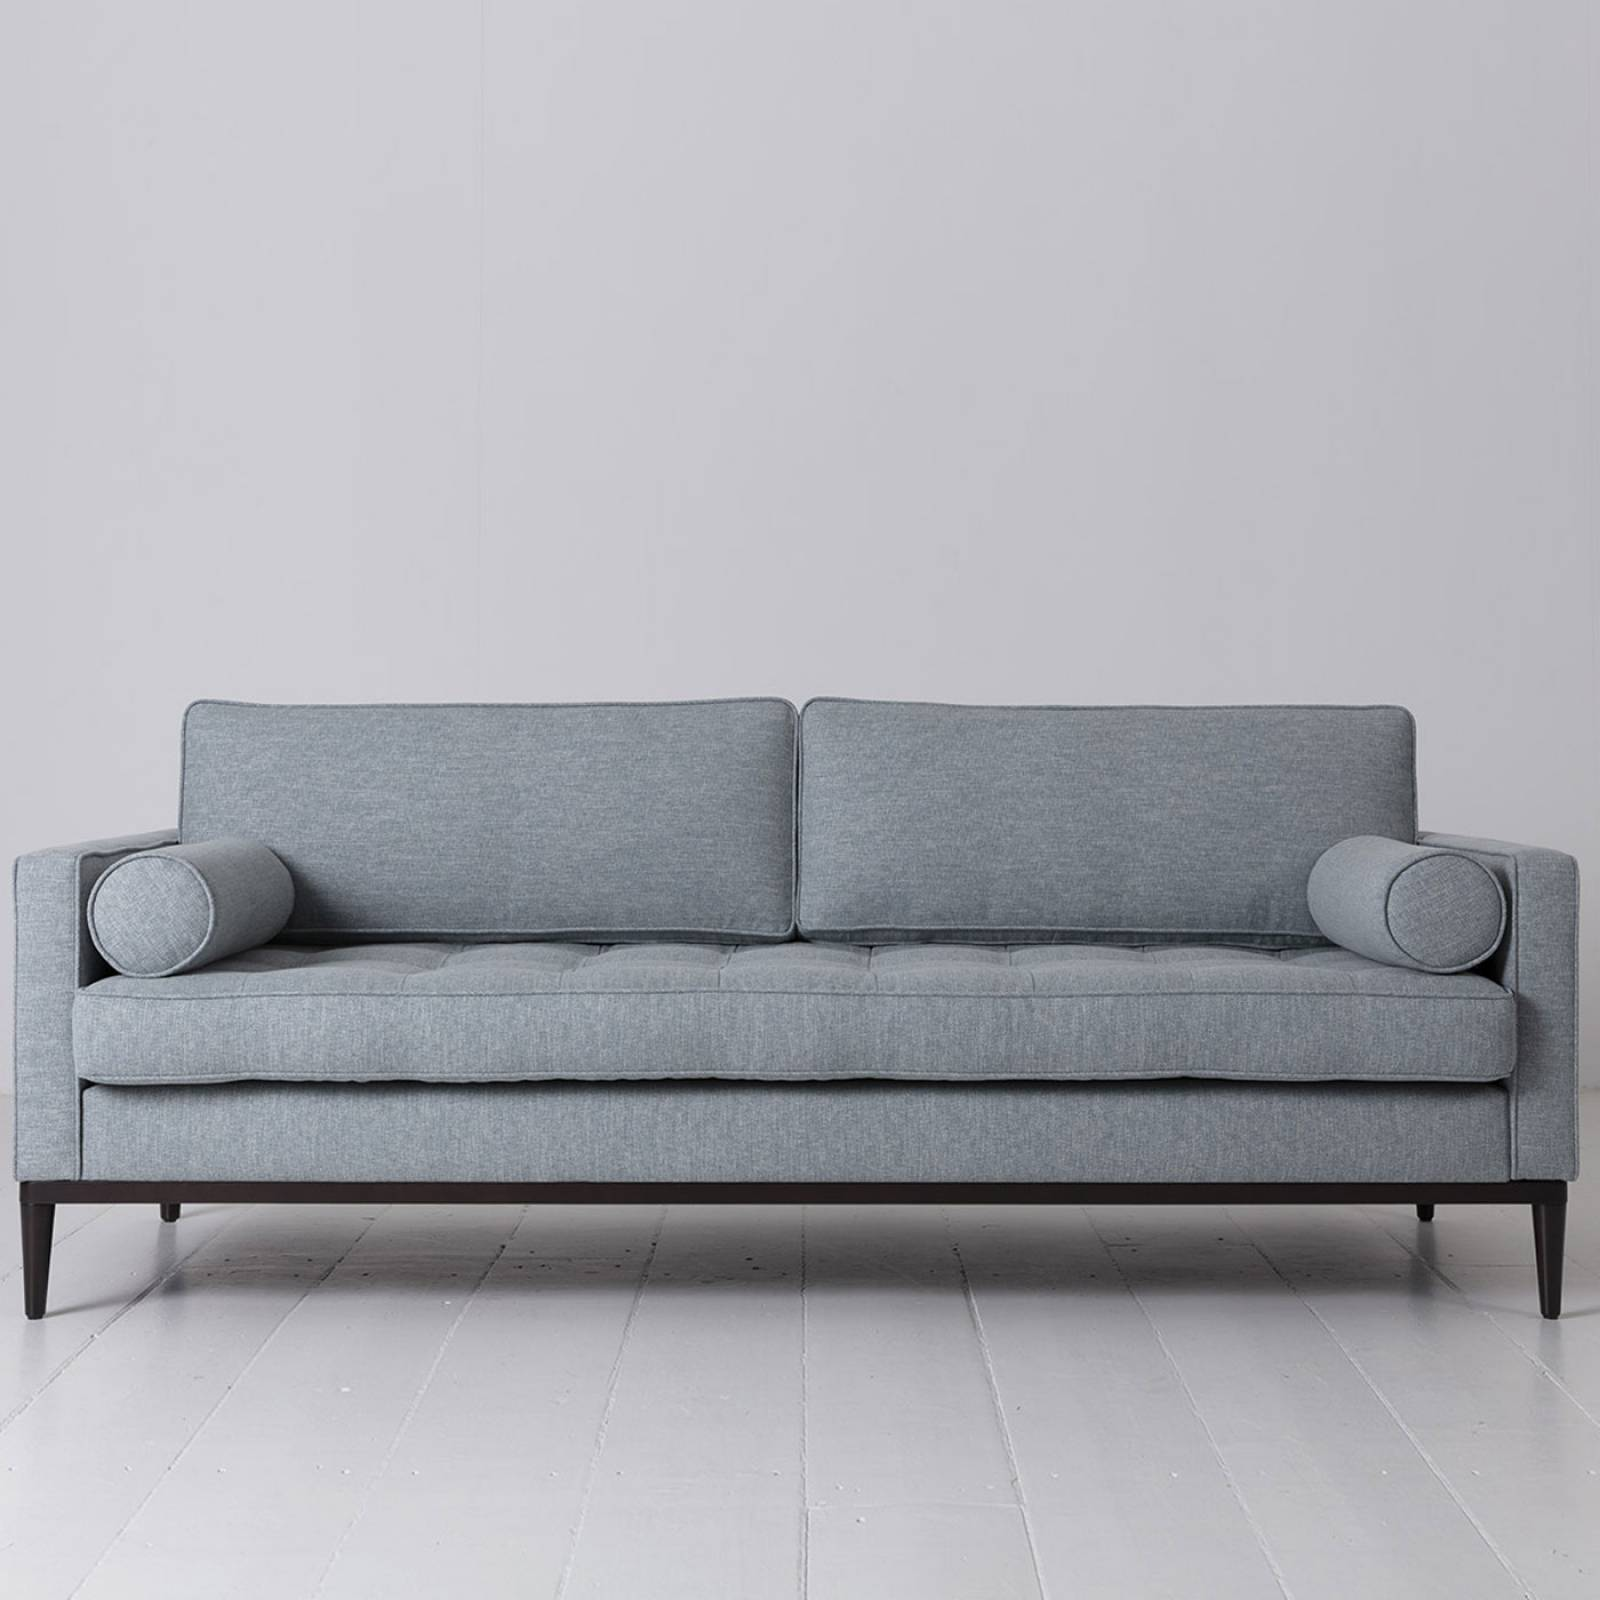 Swyft - Model 02 Linen 3 Seater Sofa - Seaglass